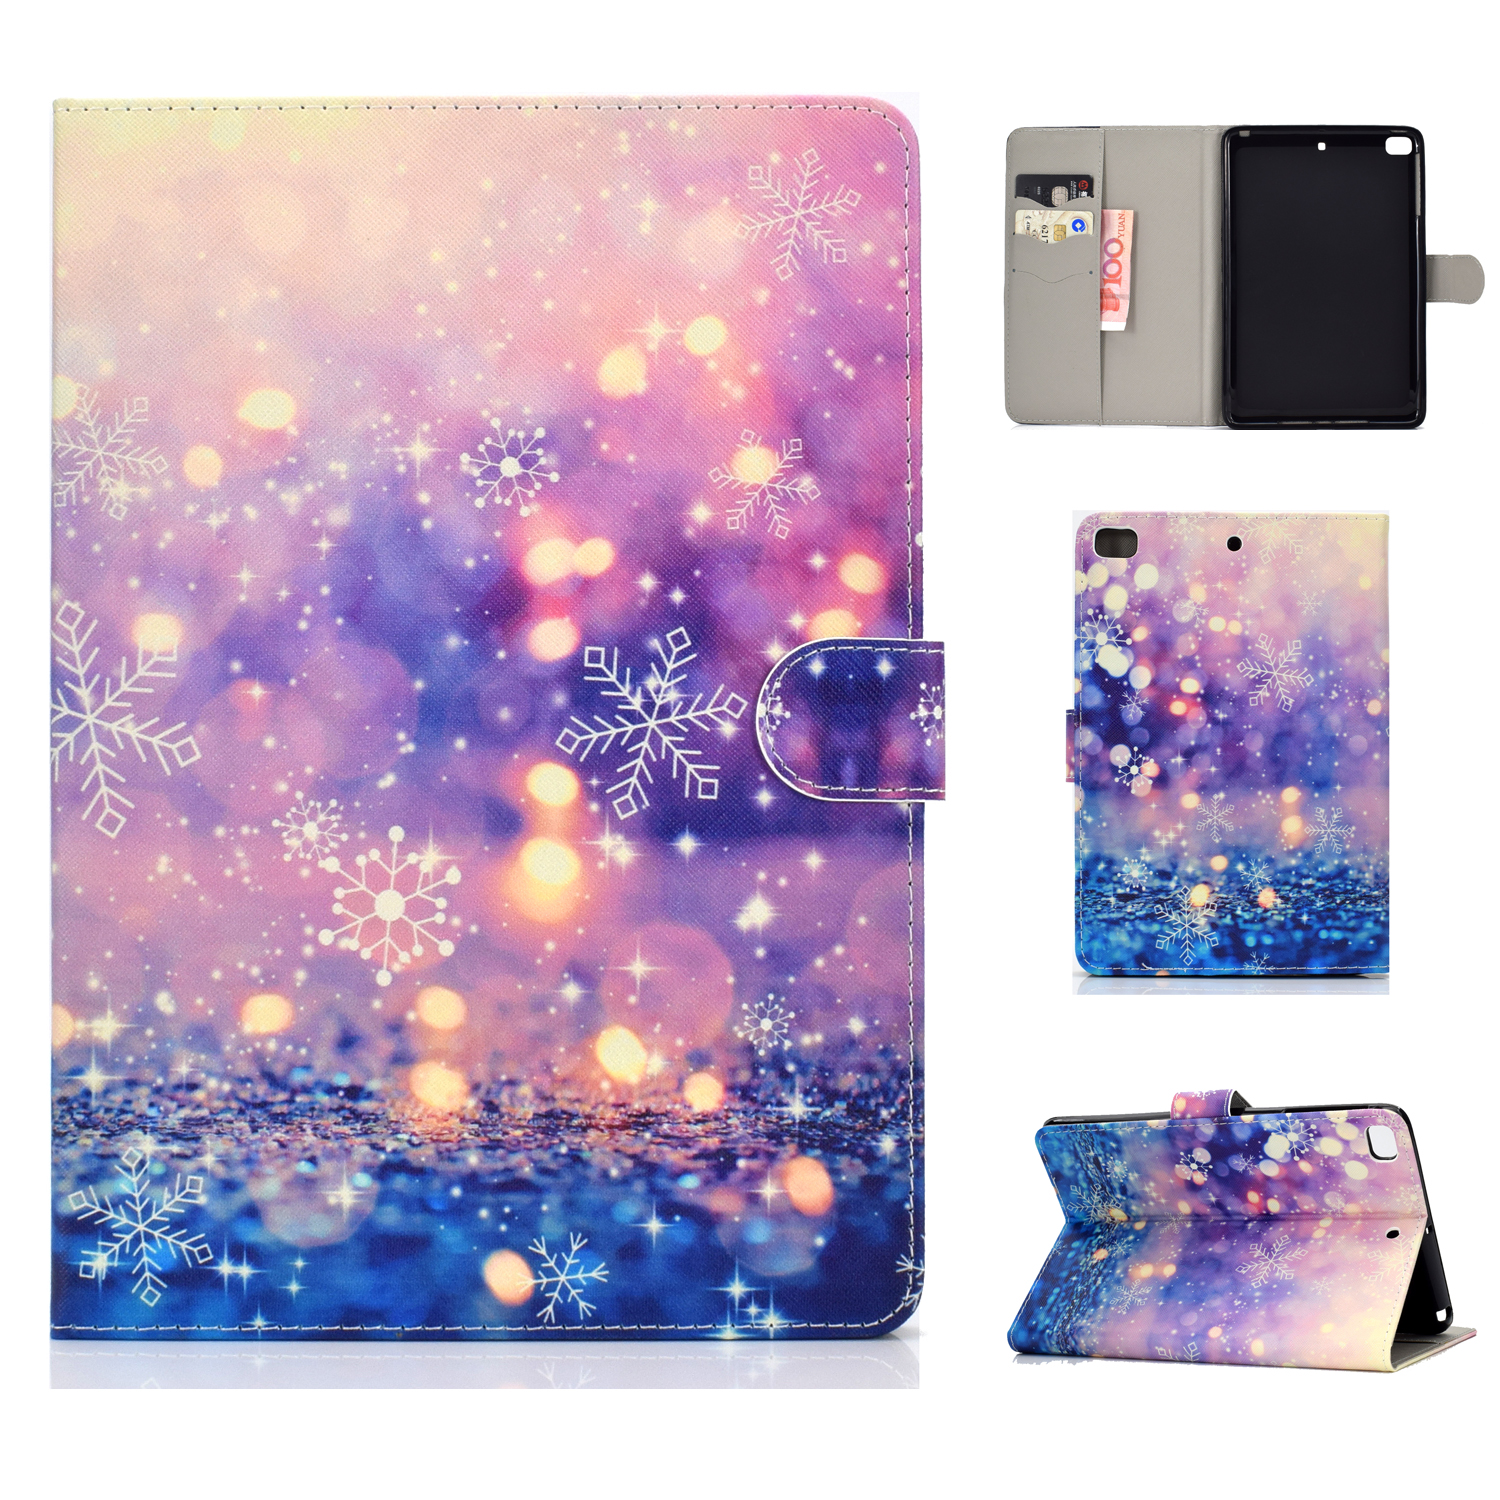 For iPad mini 1/2/3/4/5 Laptop Protective Case Frront Snap Color Painted Smart Stay PU Cover Purple quicksand